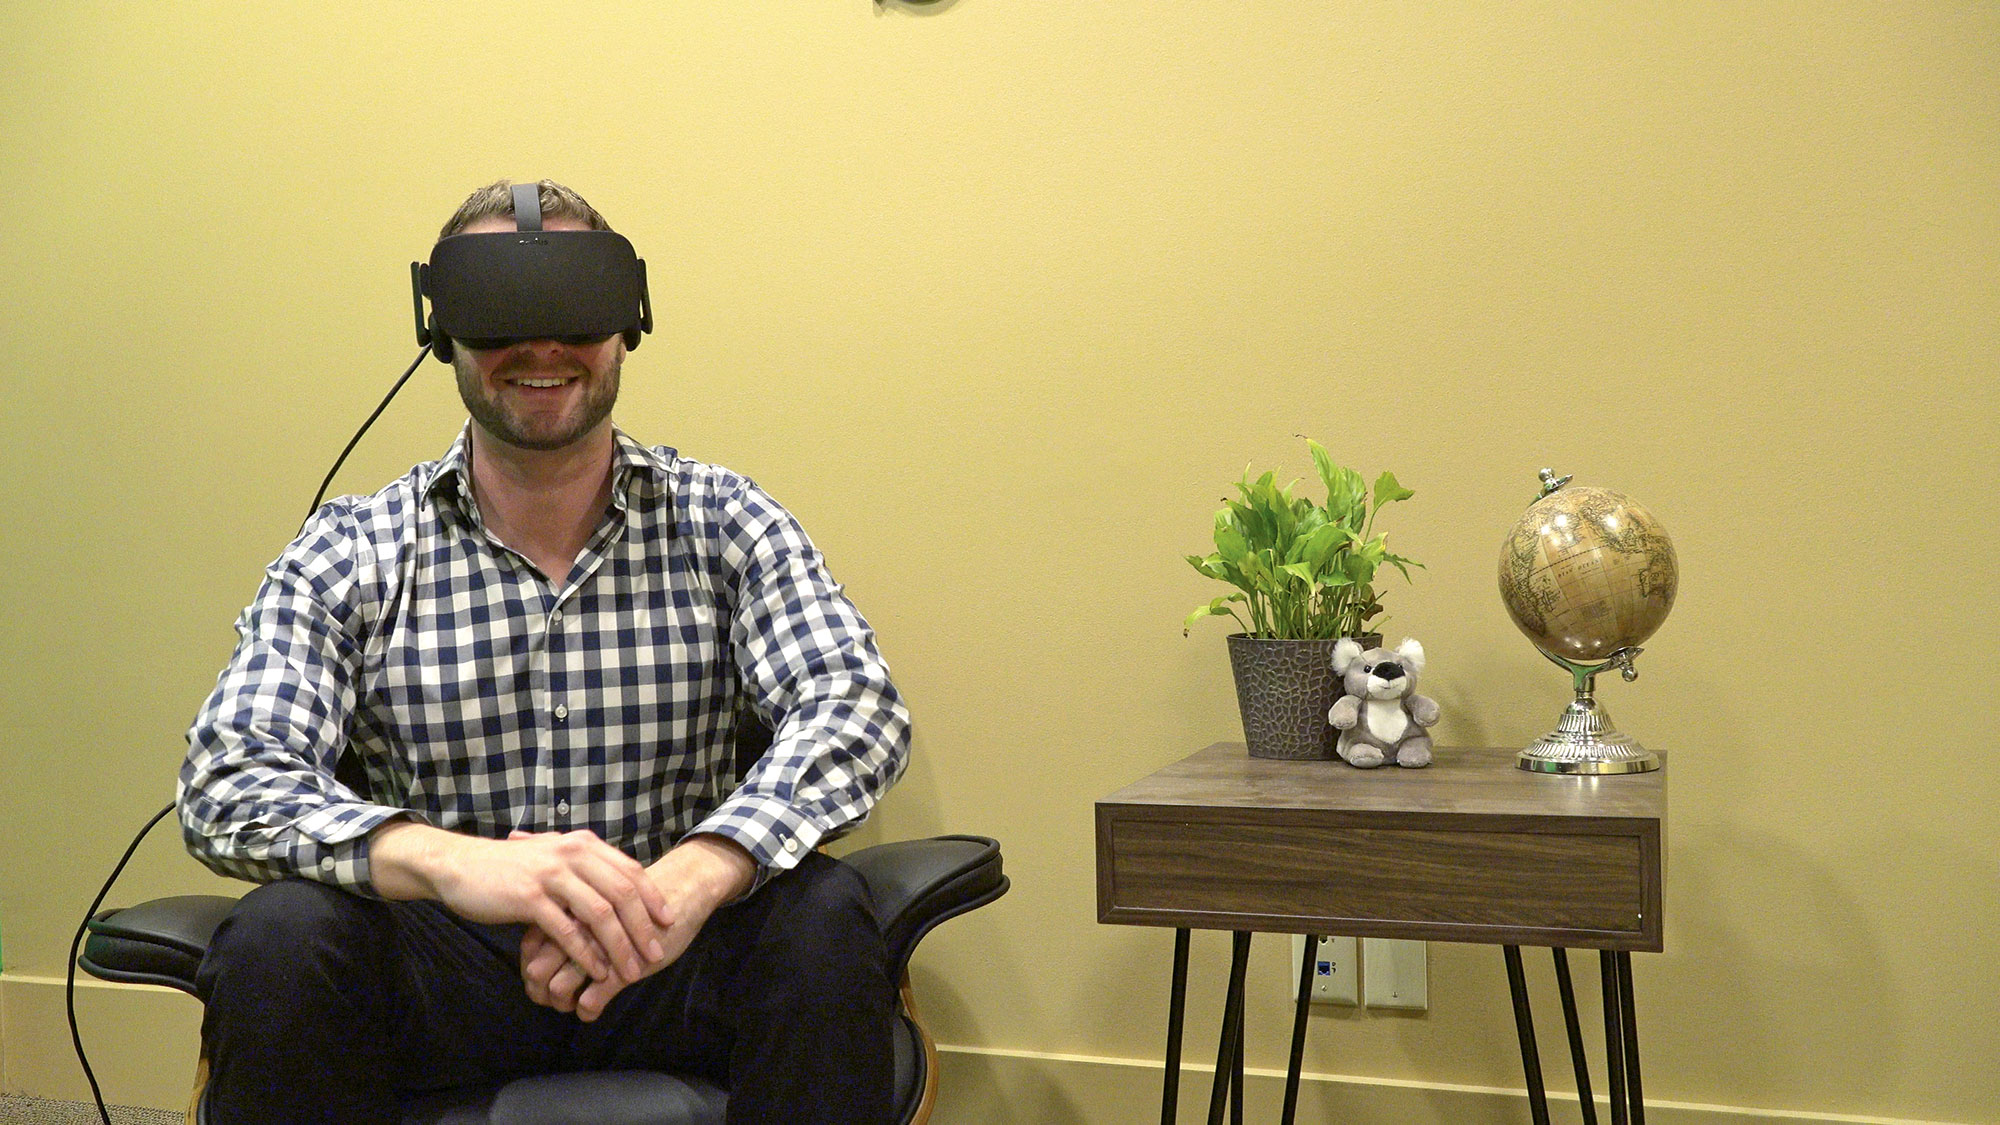 VR videos helping agents close sales